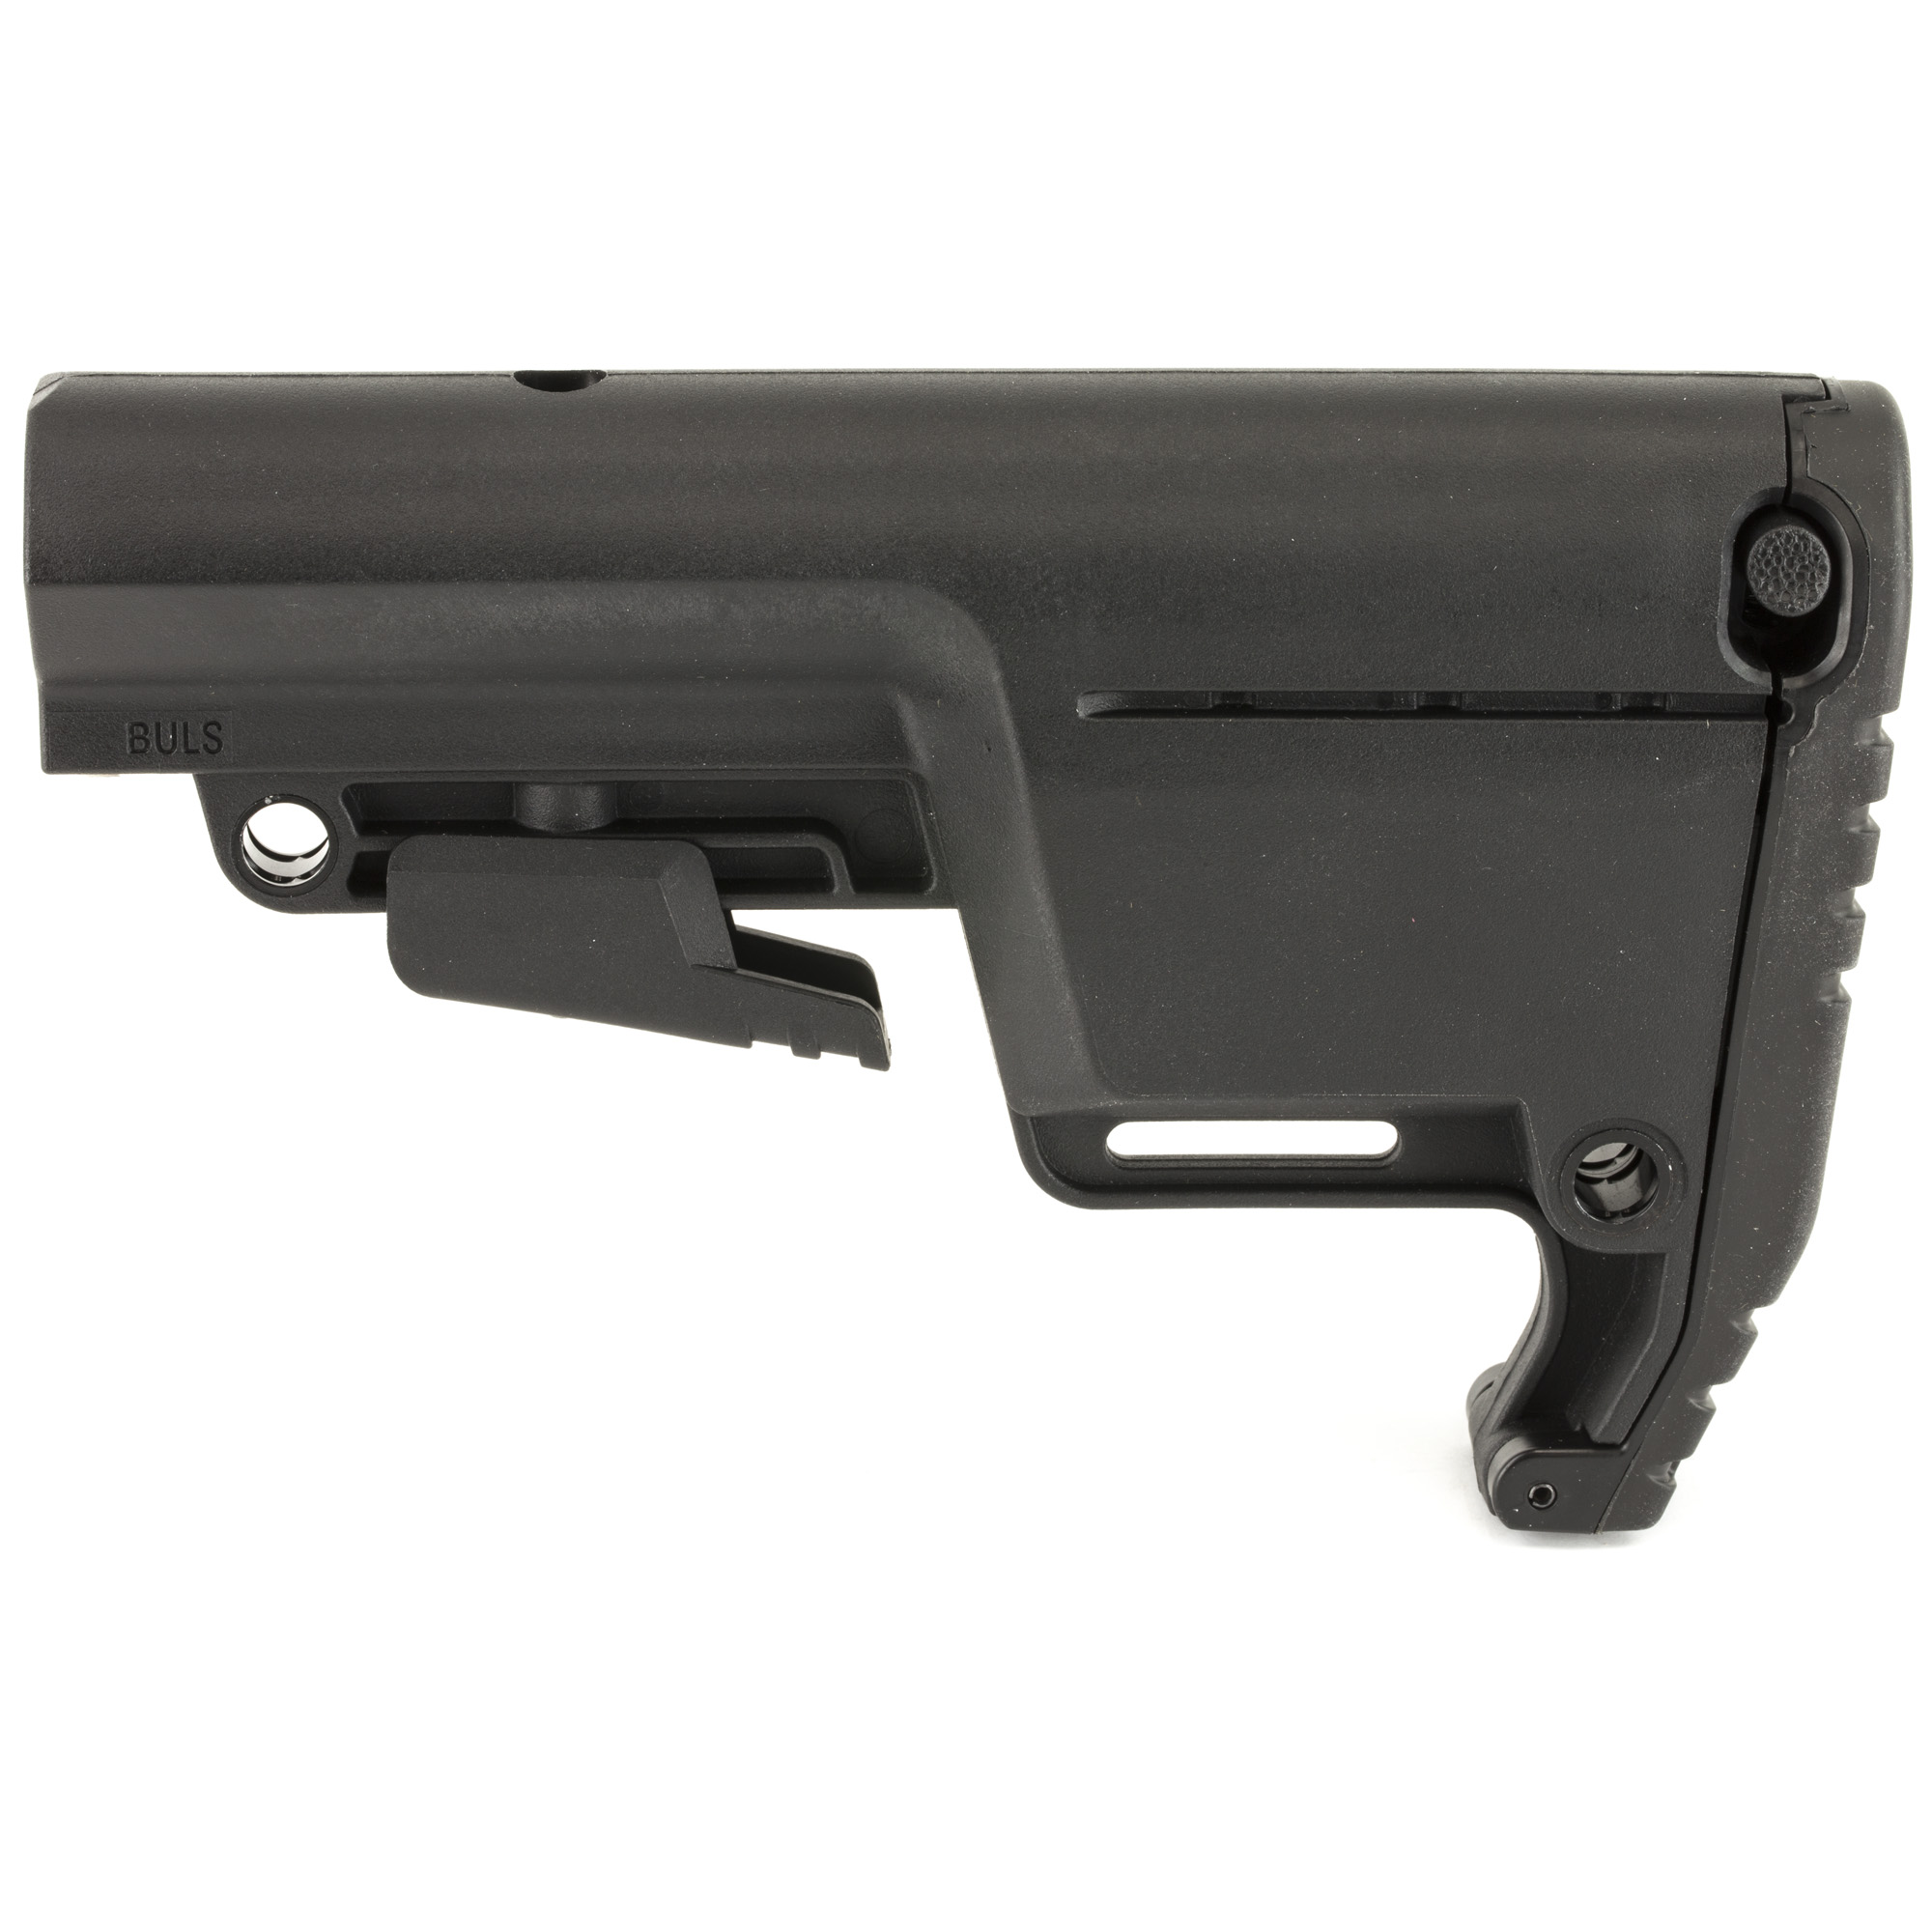 """Low profile Mil Spec version of the Utility Stock; adapts and changes based on your environment or operational needs"""" from storing additional items in the rear compartment to utilizing custom accessory mounts."""